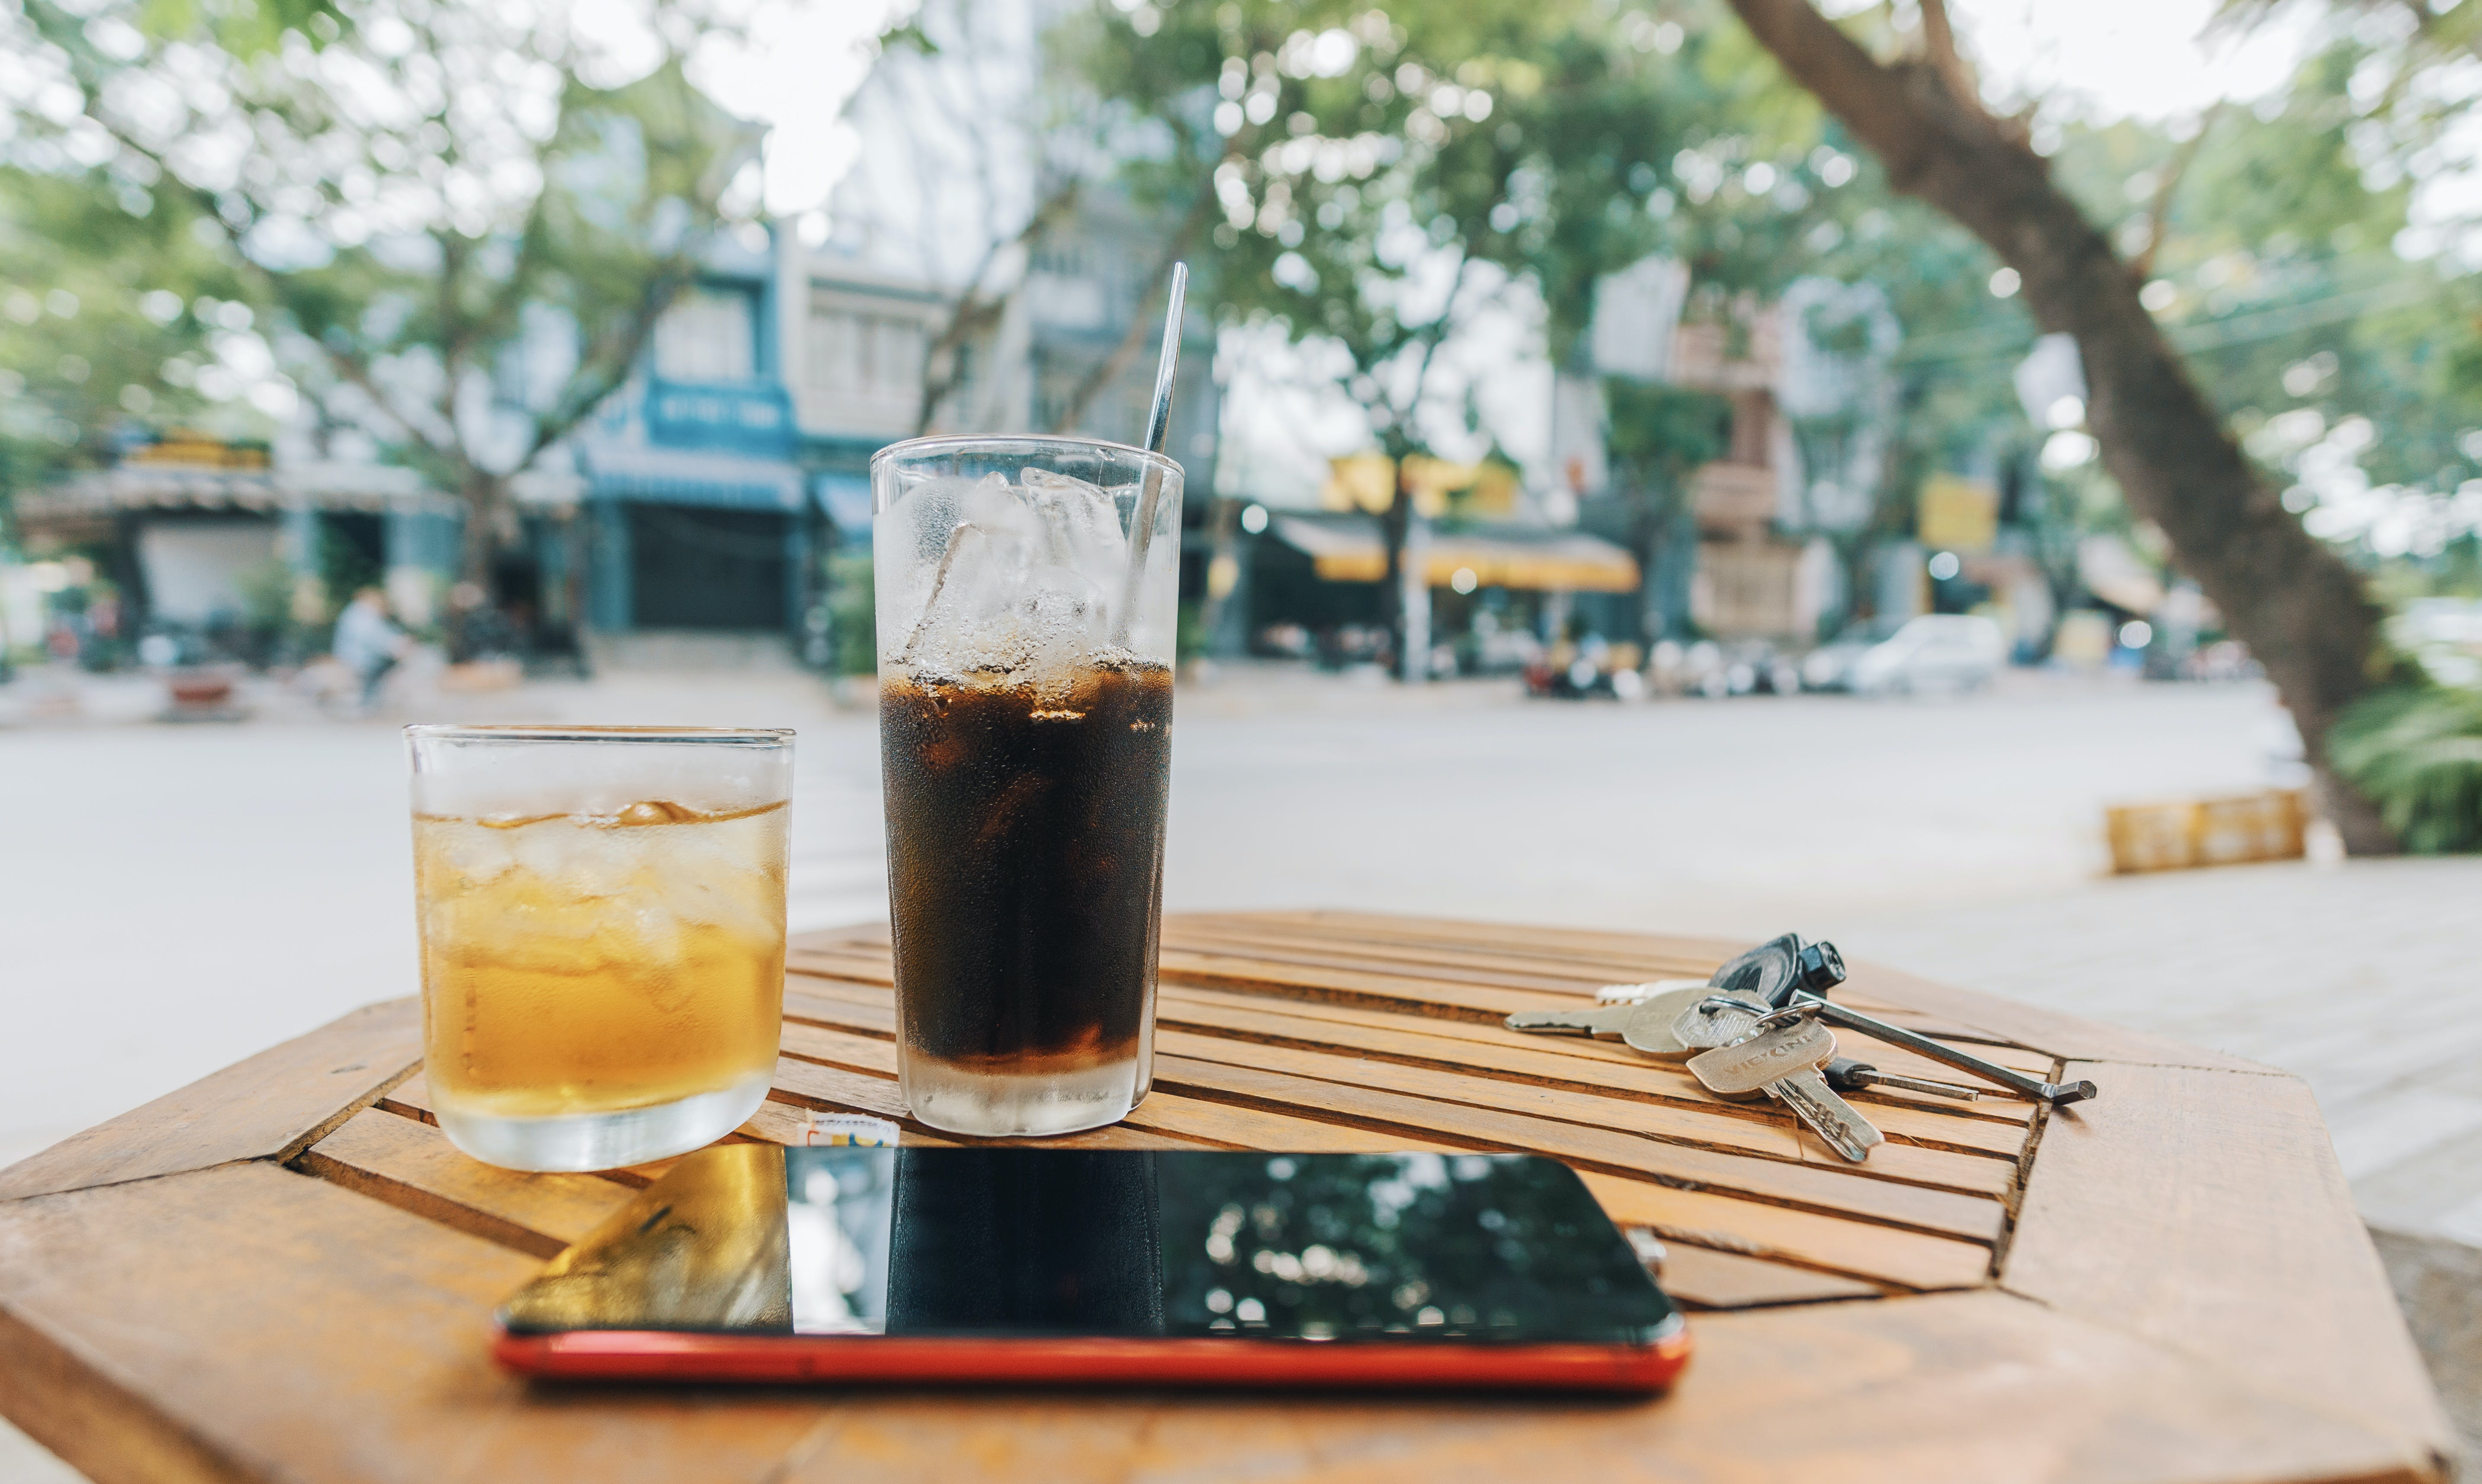 Drinks on top of a Brown Wooden Table